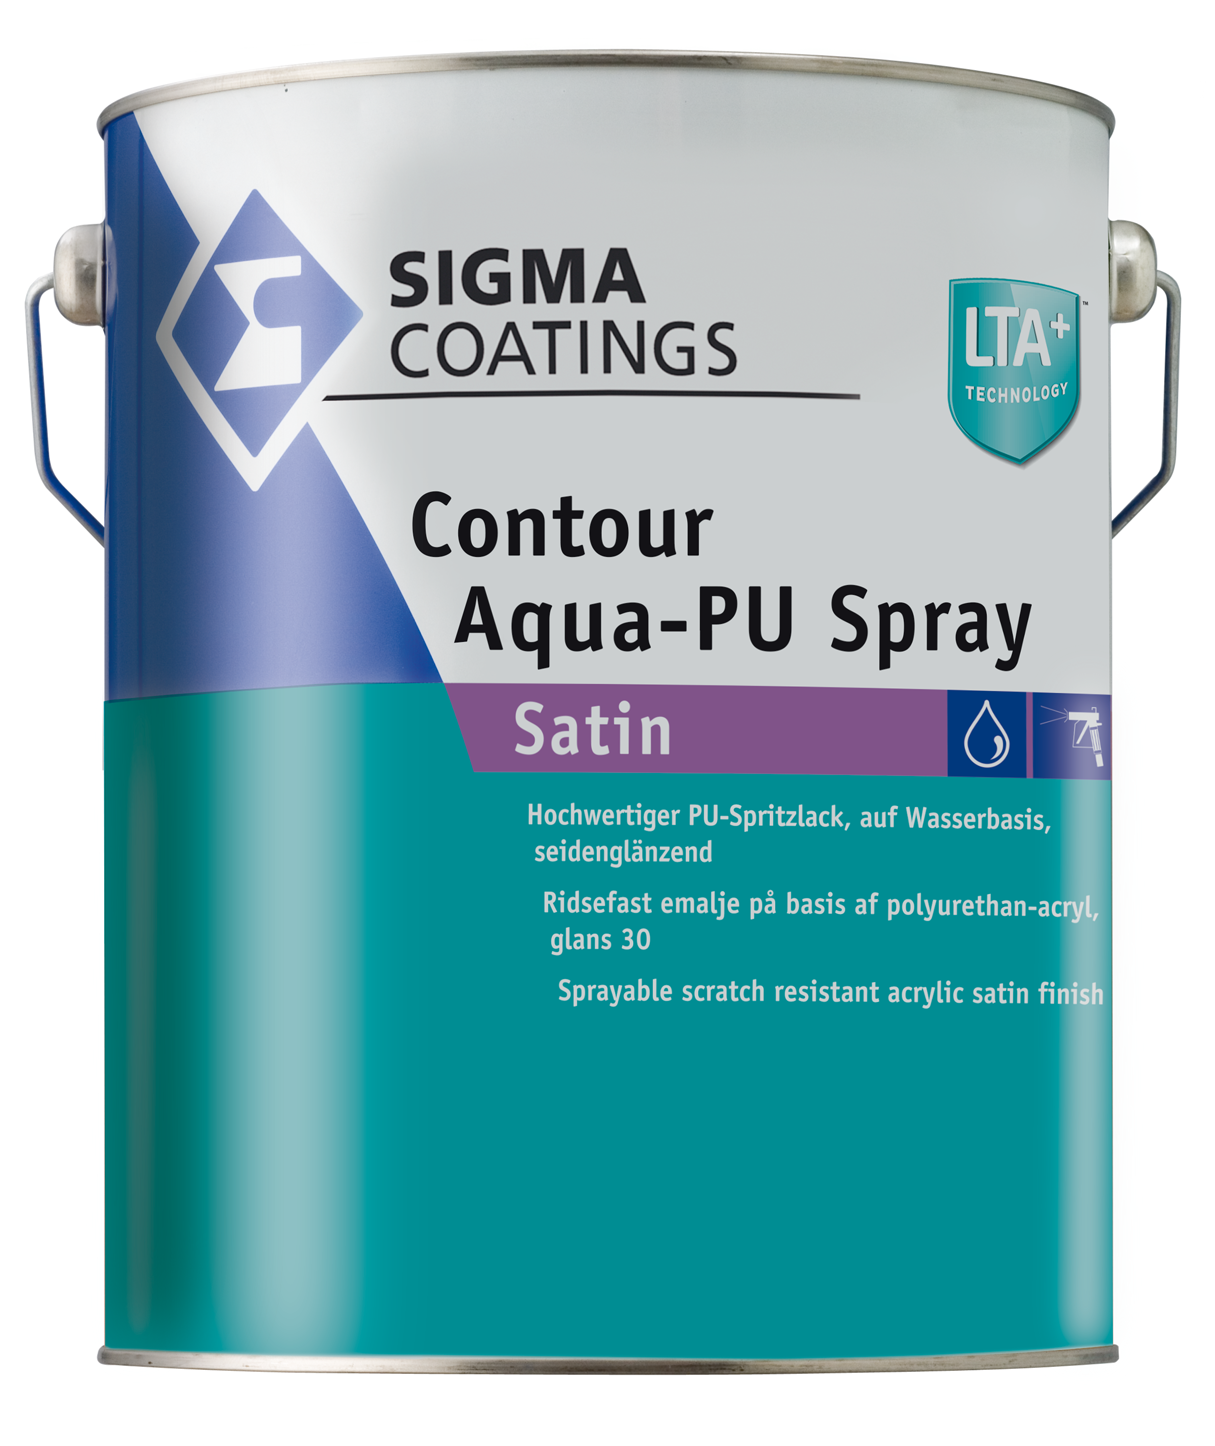 Contour Aqua-PU Spray Satin